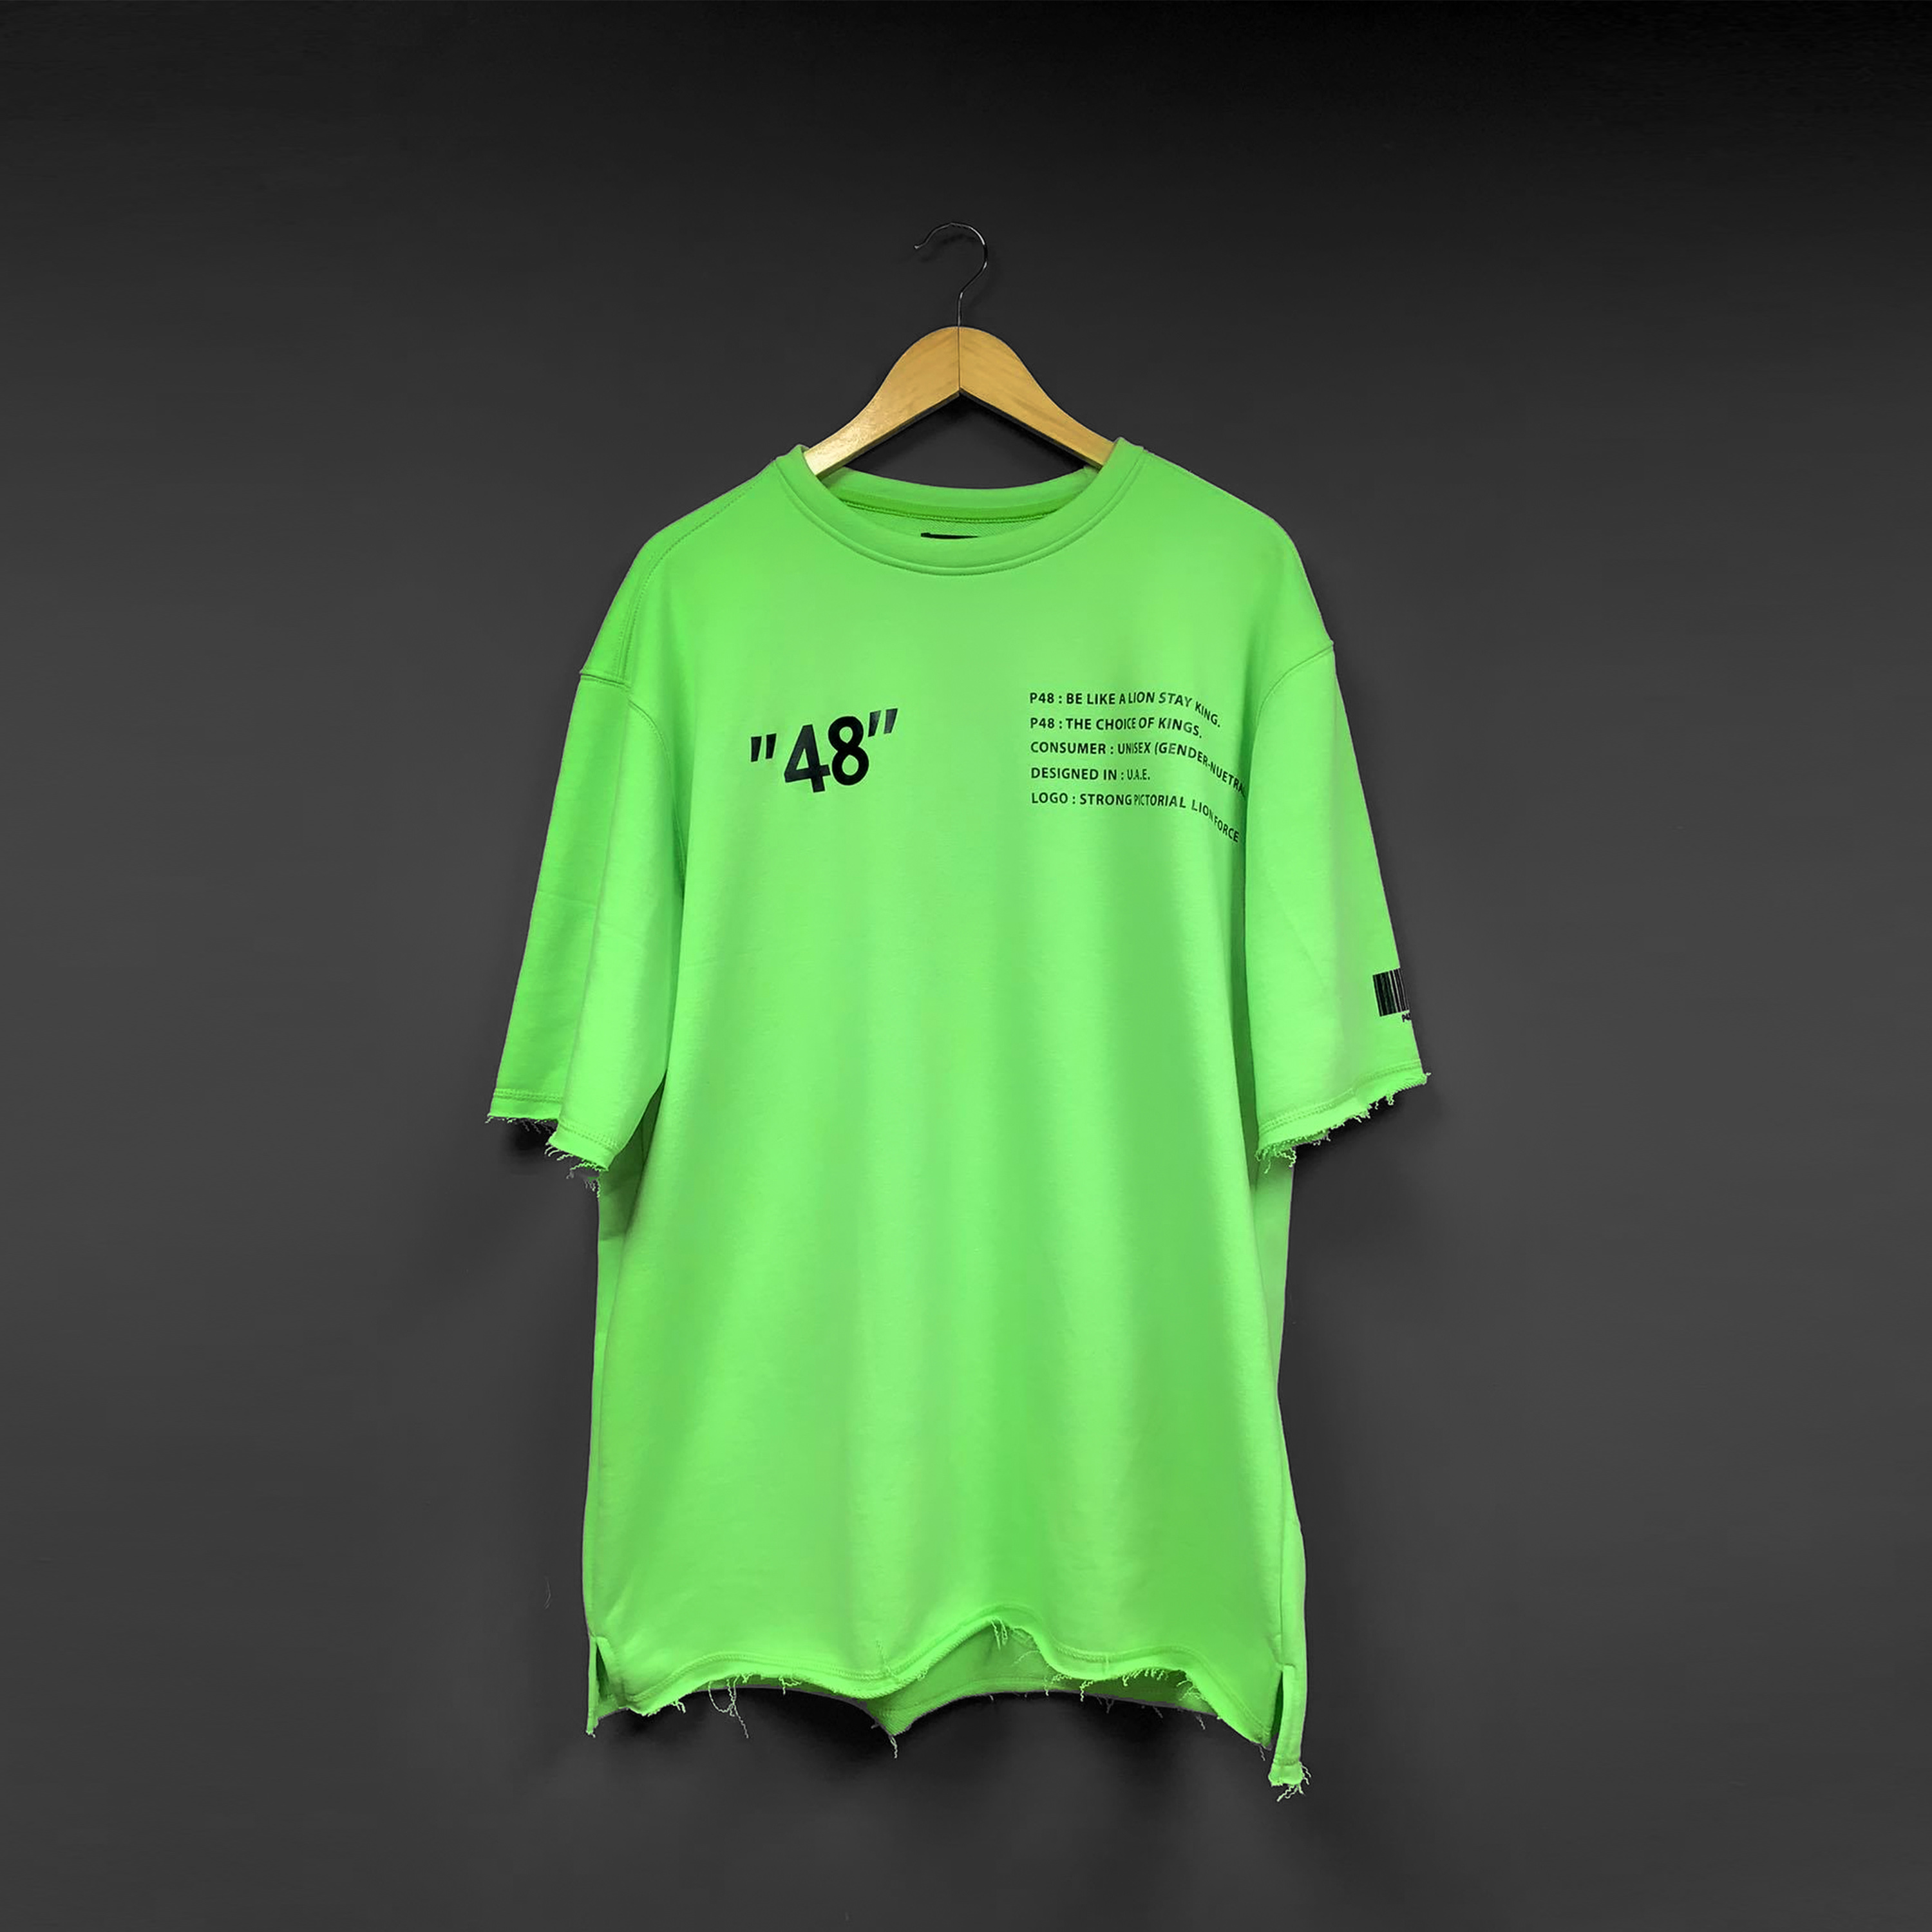 Pastel Green P48 Oversized T-shirt - Green